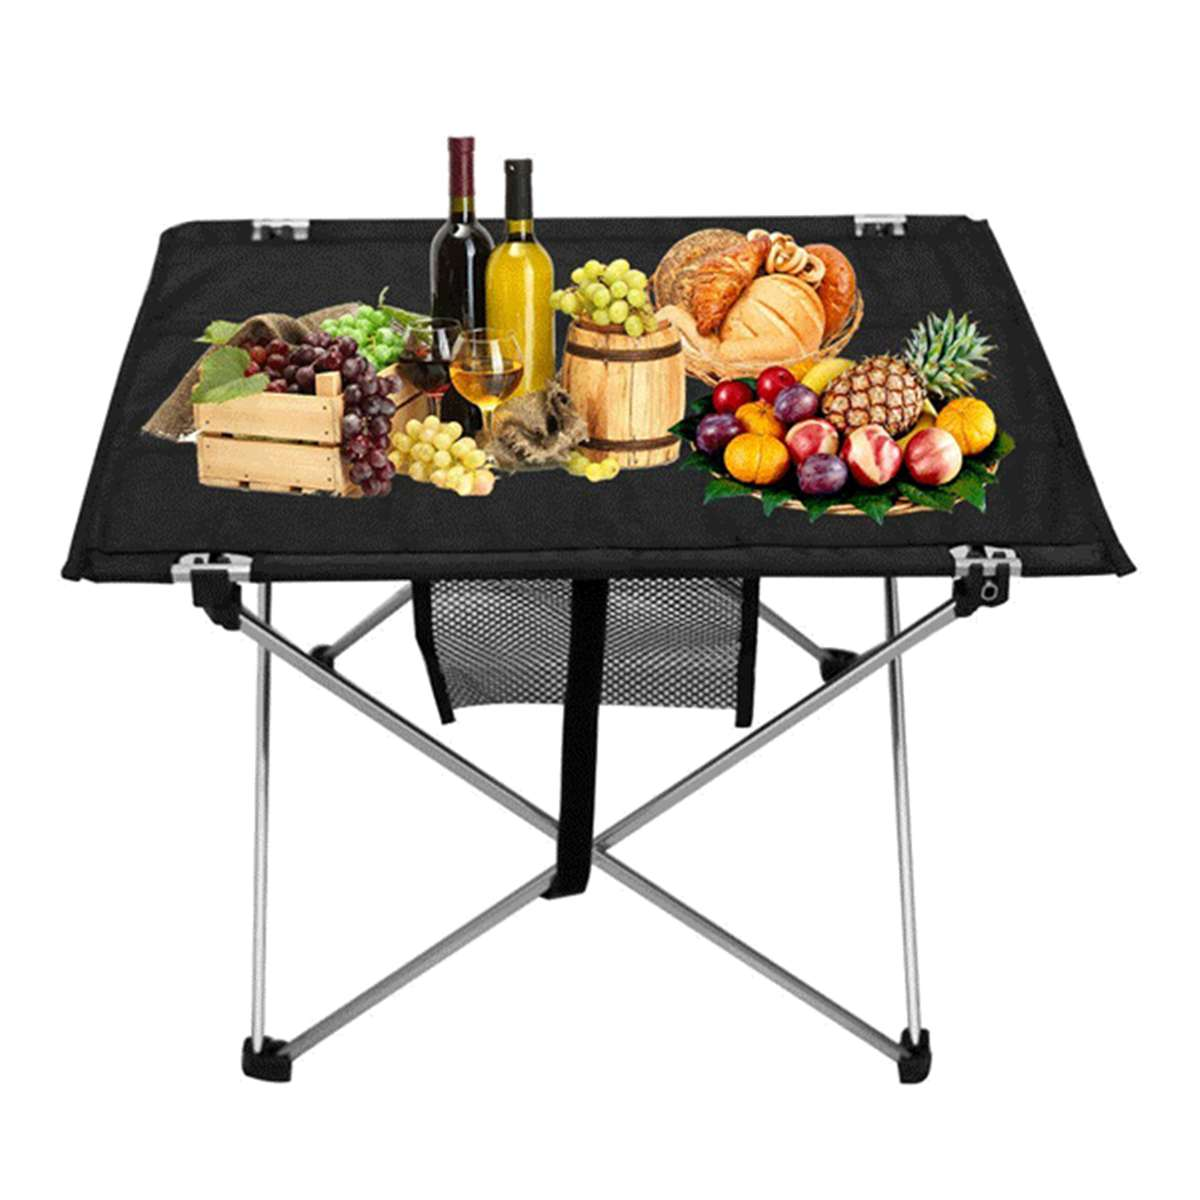 Portable Folding BBQ Table Camp Table Rustproof  Tabletop Outdoor Heavy Duty Folding Table Portable Picnic Camping BBQ Party